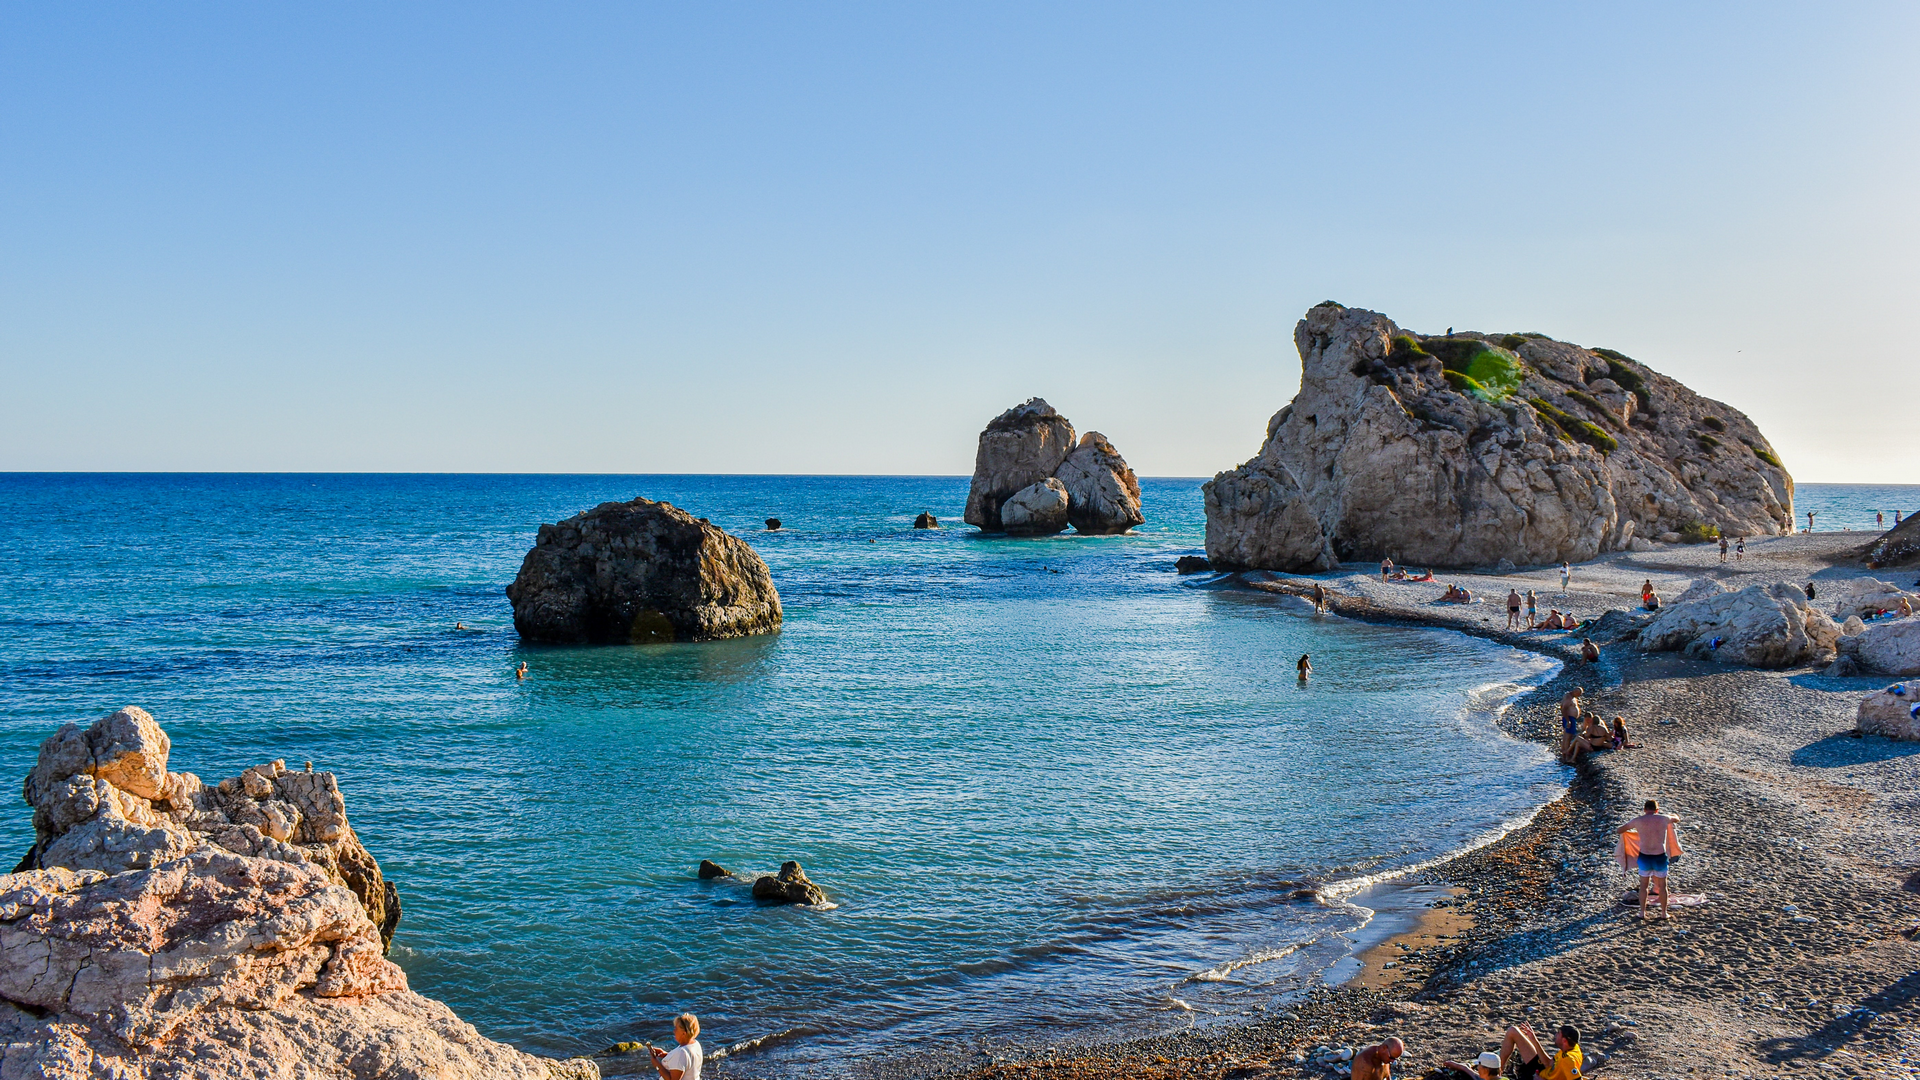 A view in Cyprus